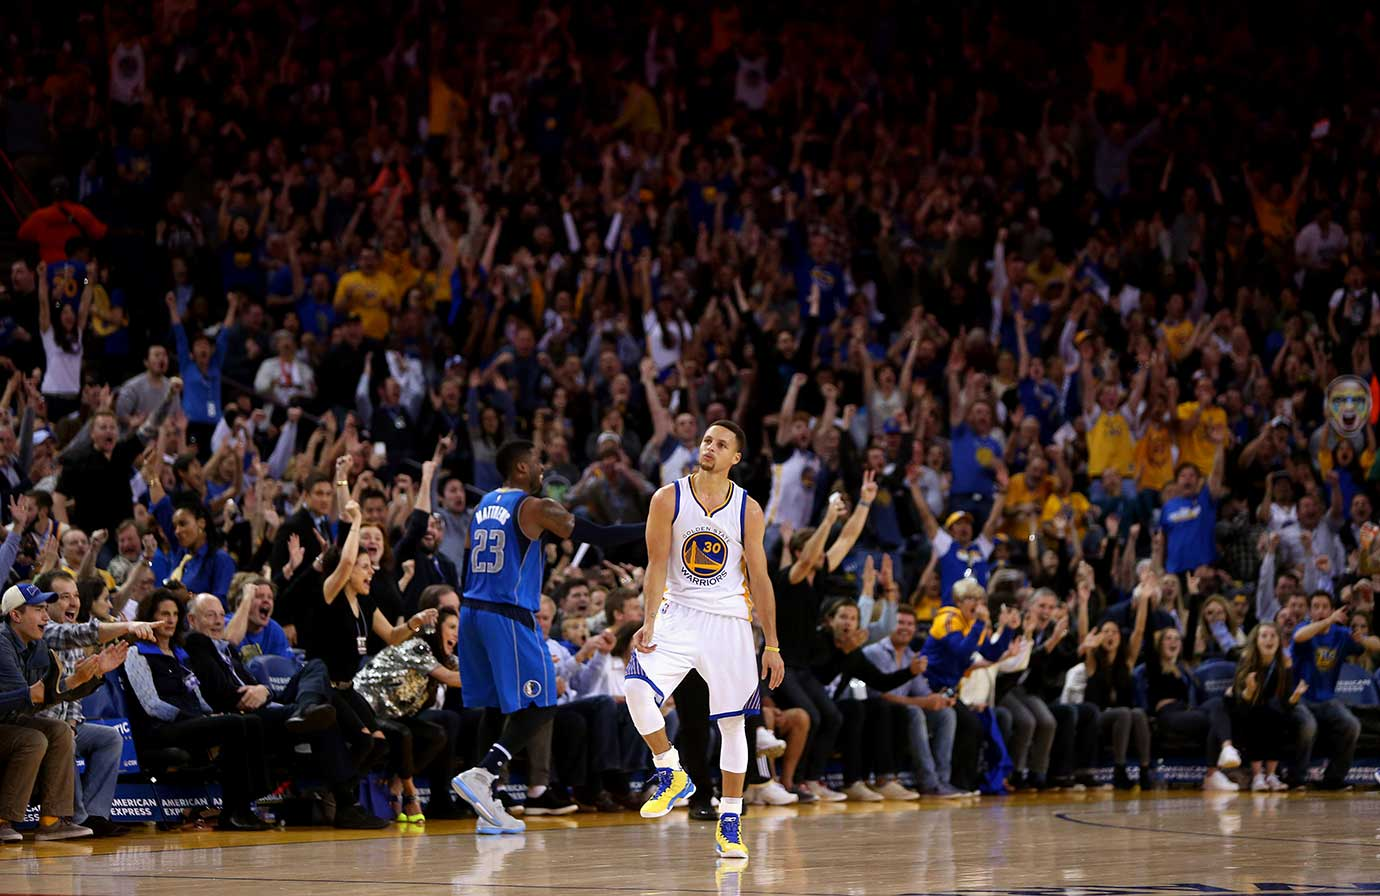 Stephen Curry reacts after making a shot near half court at the end of the first half against the Dallas Mavericks.